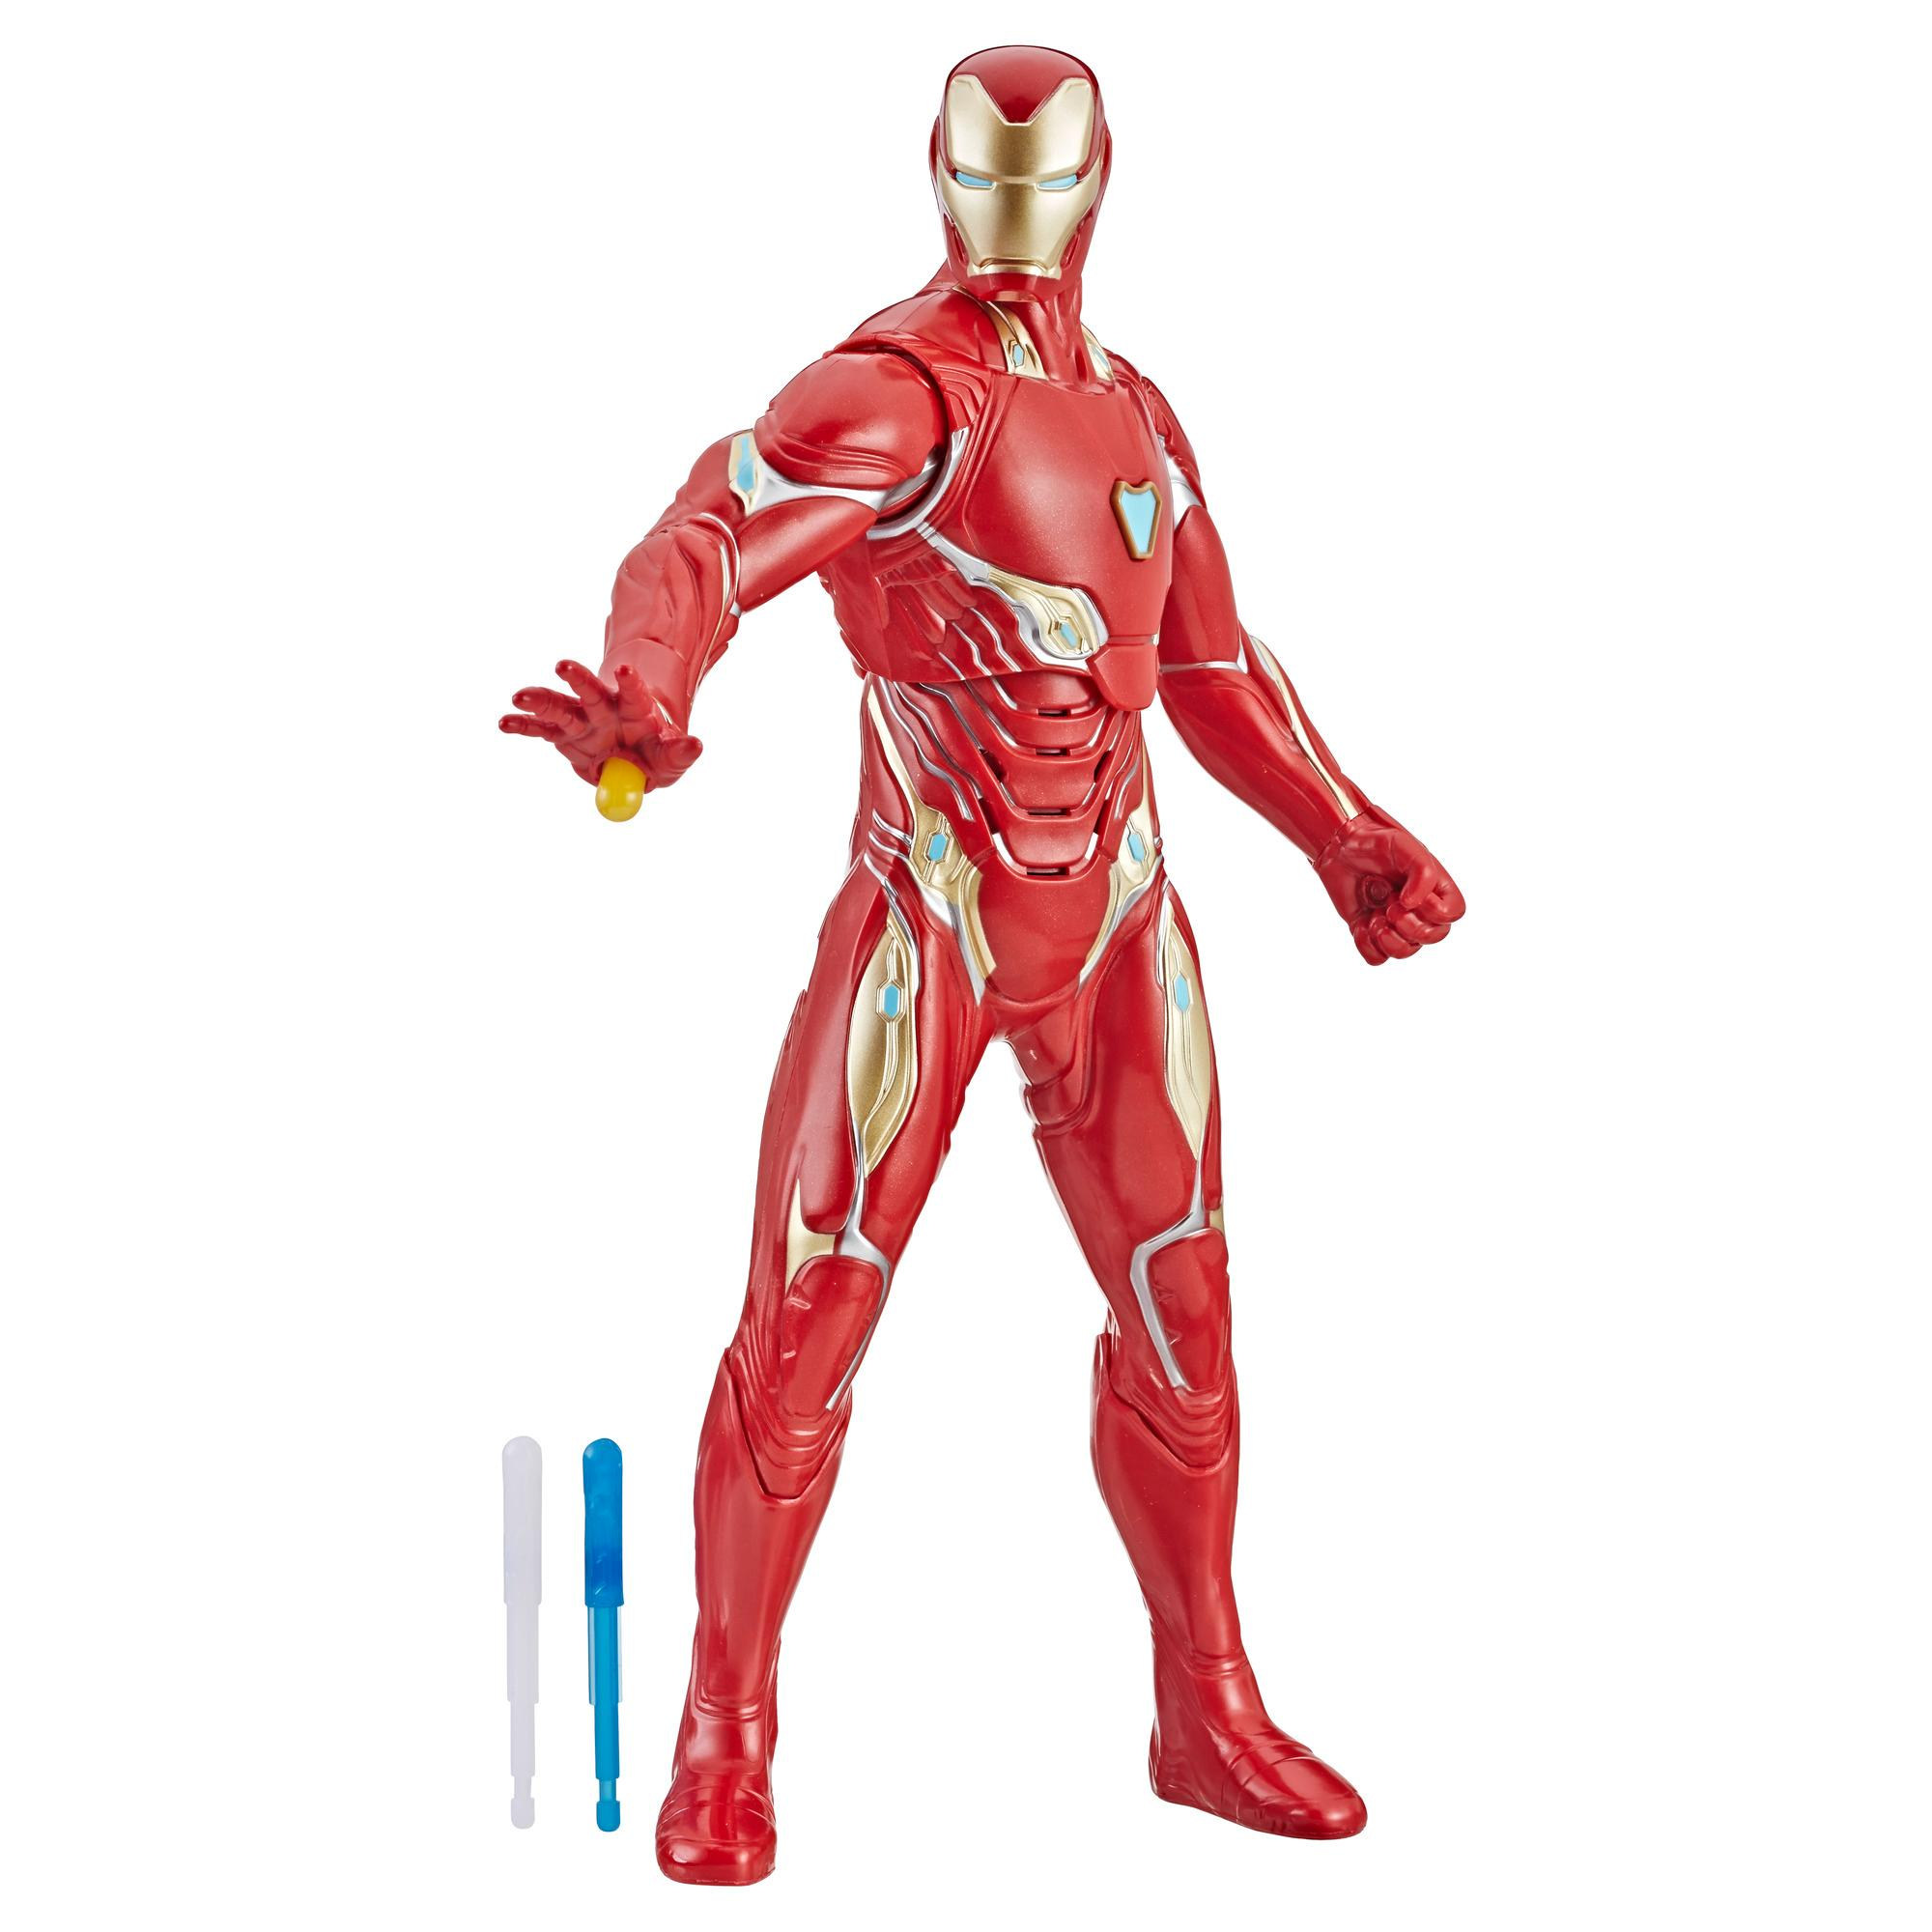 AVENGERS FX ARC BLAST IRON MAN